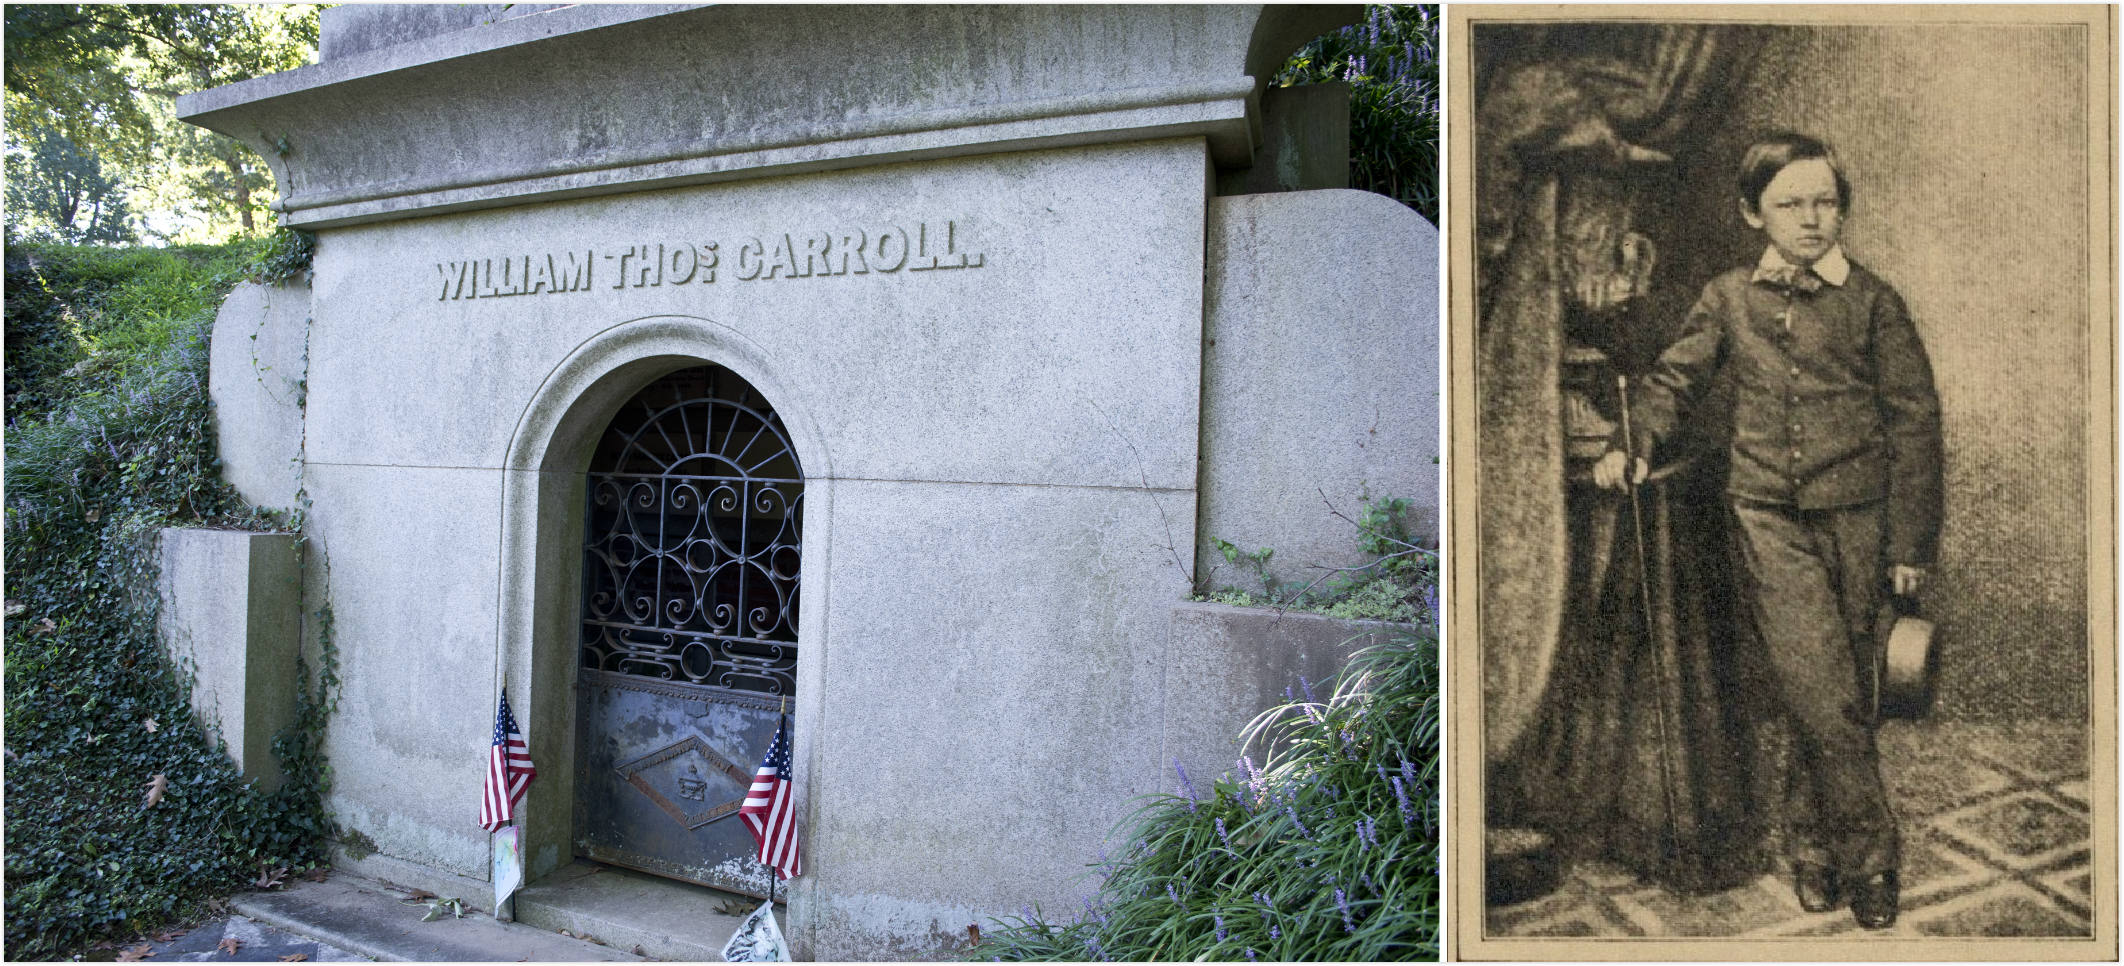 1.威利之墓 William Thomas. Carroll Crypt